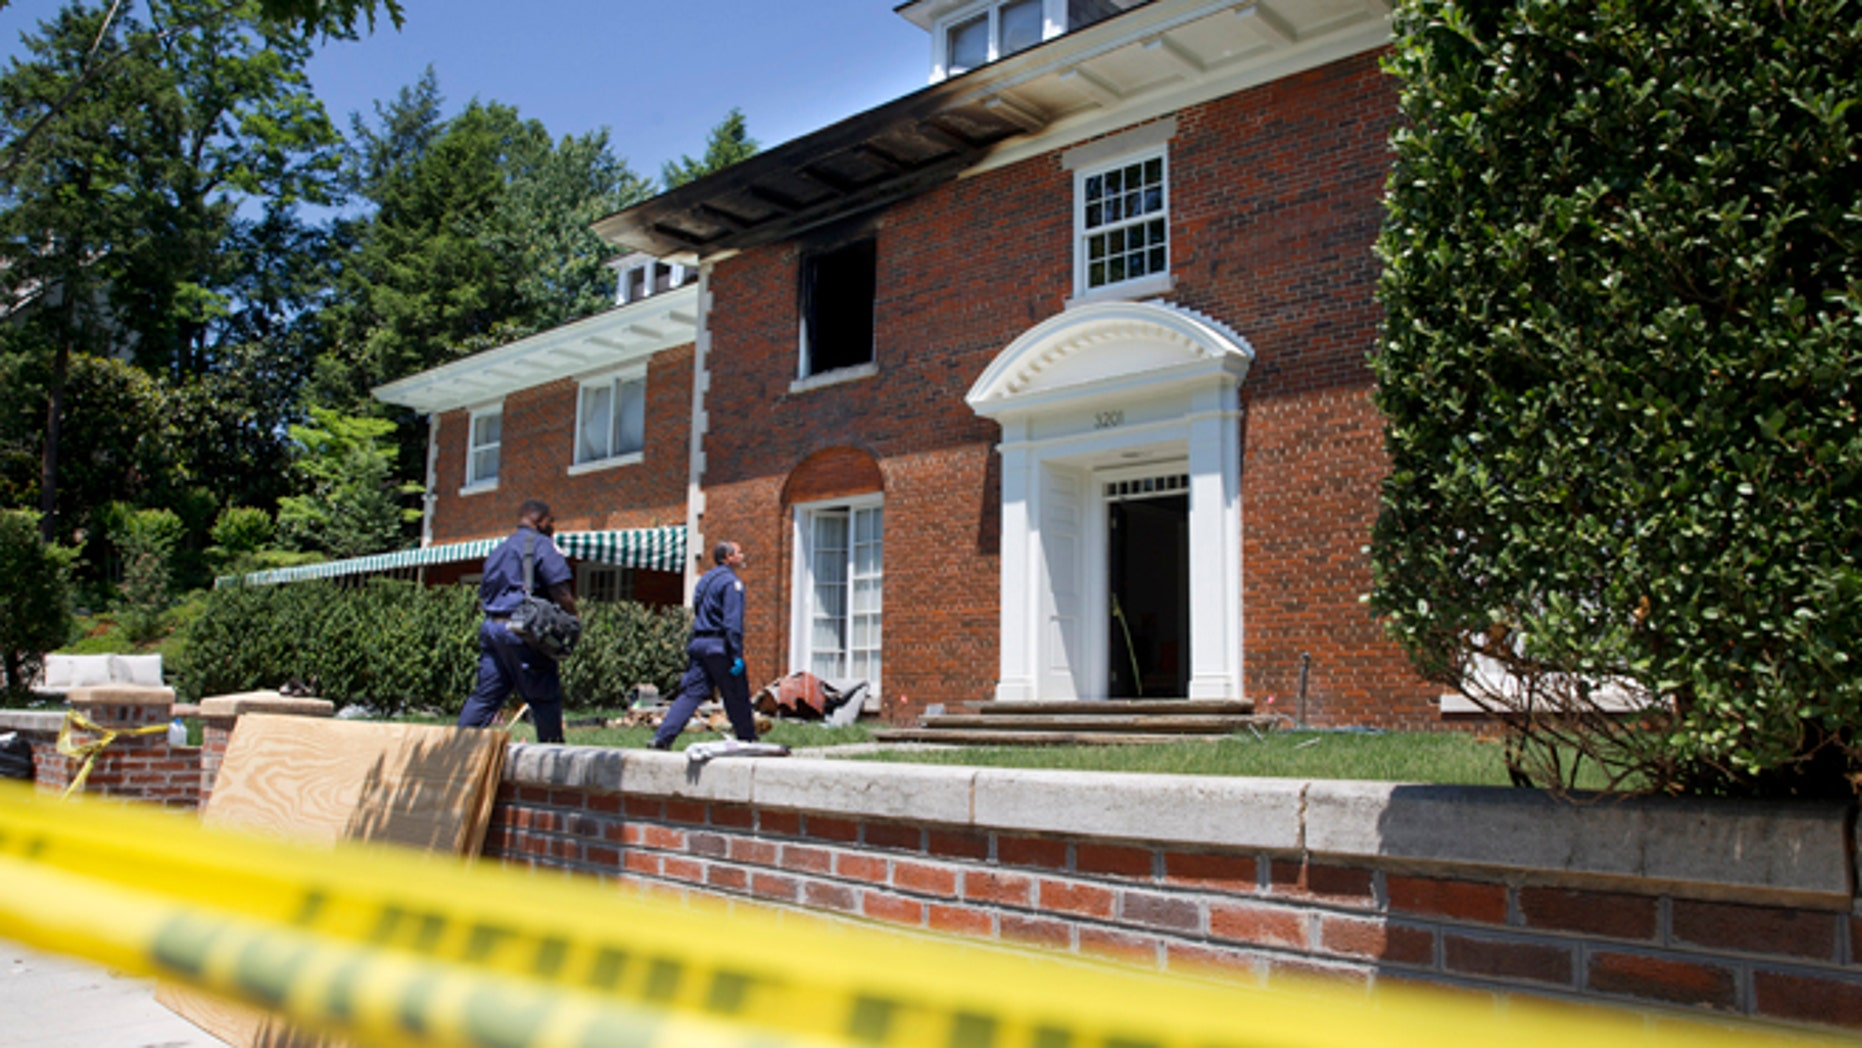 Police continue working at a fire-damaged multimillion-dollar home in northwest Washington home, Friday May 22, 2015, where 46-year-old Savvas Savopoulos, his 47-year-old wife, Amy Savopoulos, the couple's 10-year-old son Philip, and housekeeper Veralicia Figueroa were found dead May 14. U.S. marshals and police arrested a dangerous ex-convict and took his five companions into custody, safely ending a multistate manhunt in the slayings of a wealthy Washington family and their housekeeper. The fugitive task force tracked Daron Dylon Wint to New York and back before they caught up with him late Thursday (AP Photo/Jacquelyn Martin)